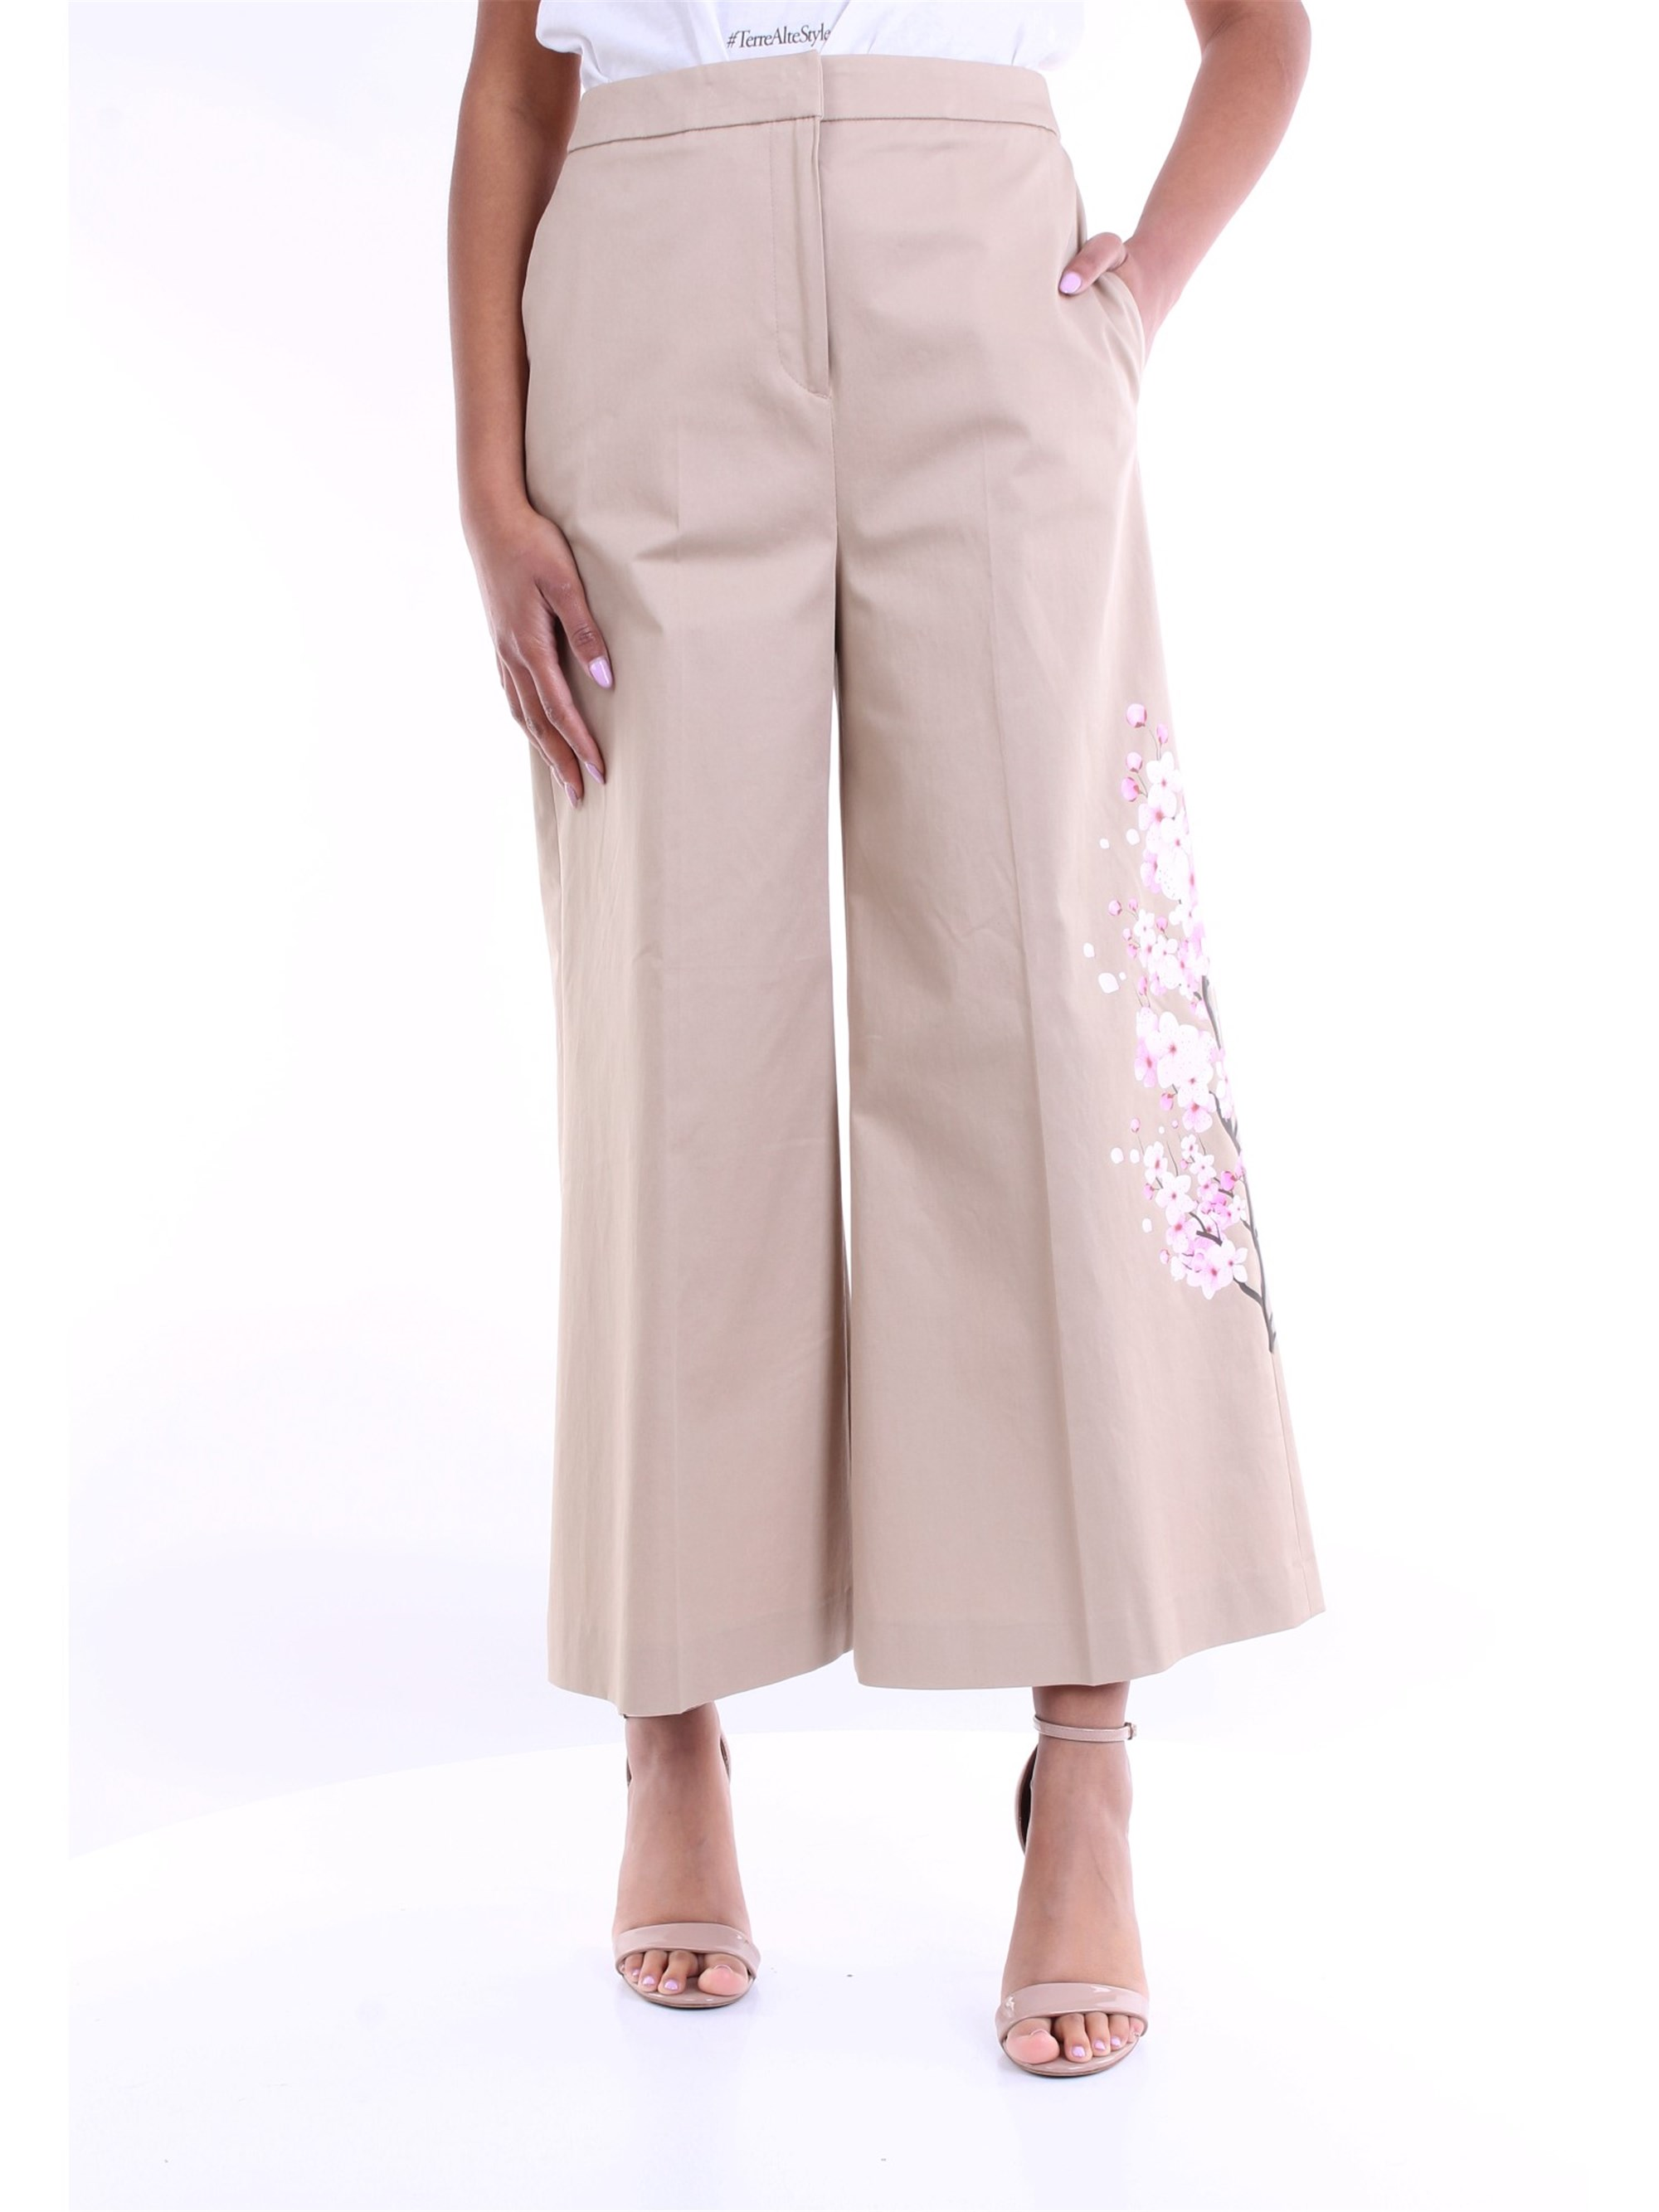 Pt Torino PT TORINO TROUSERS CROPPED WOMEN SAND